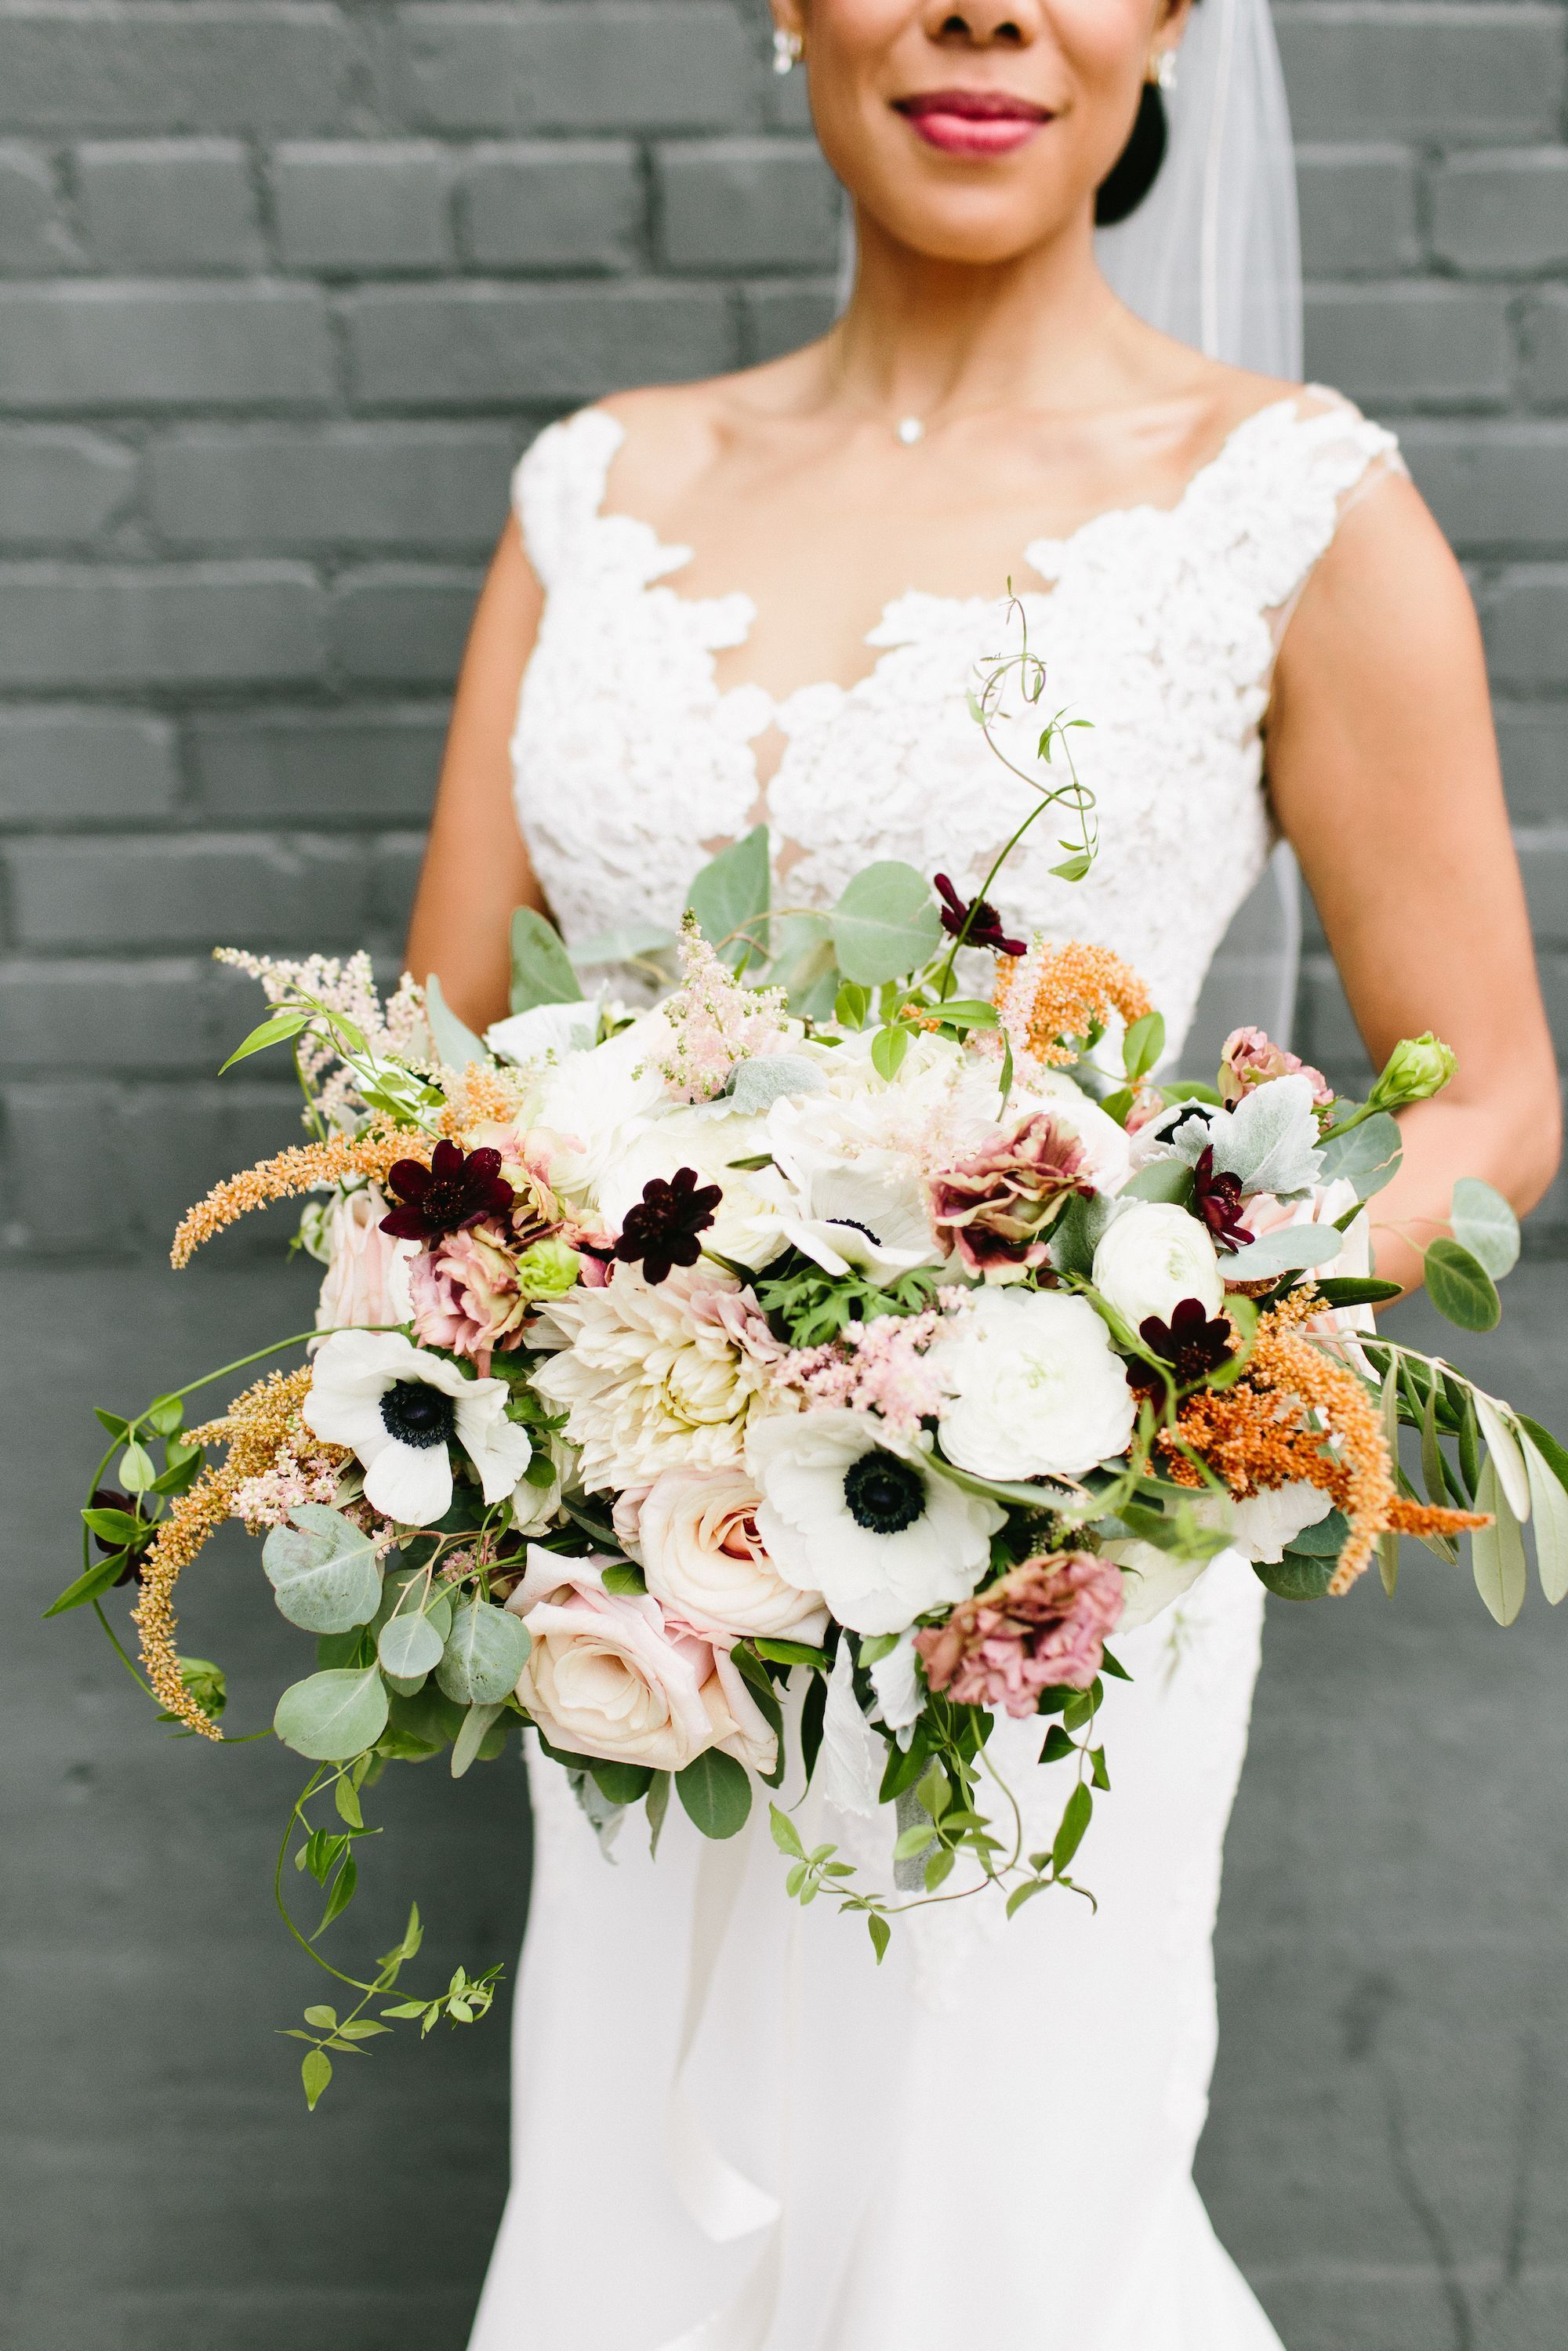 Oversize Anemone, Astilbe and Dahlia Bouquet #astilbebouquet Oversize Anemone, Astilbe and Dahlia Bouquet #astilbebouquet